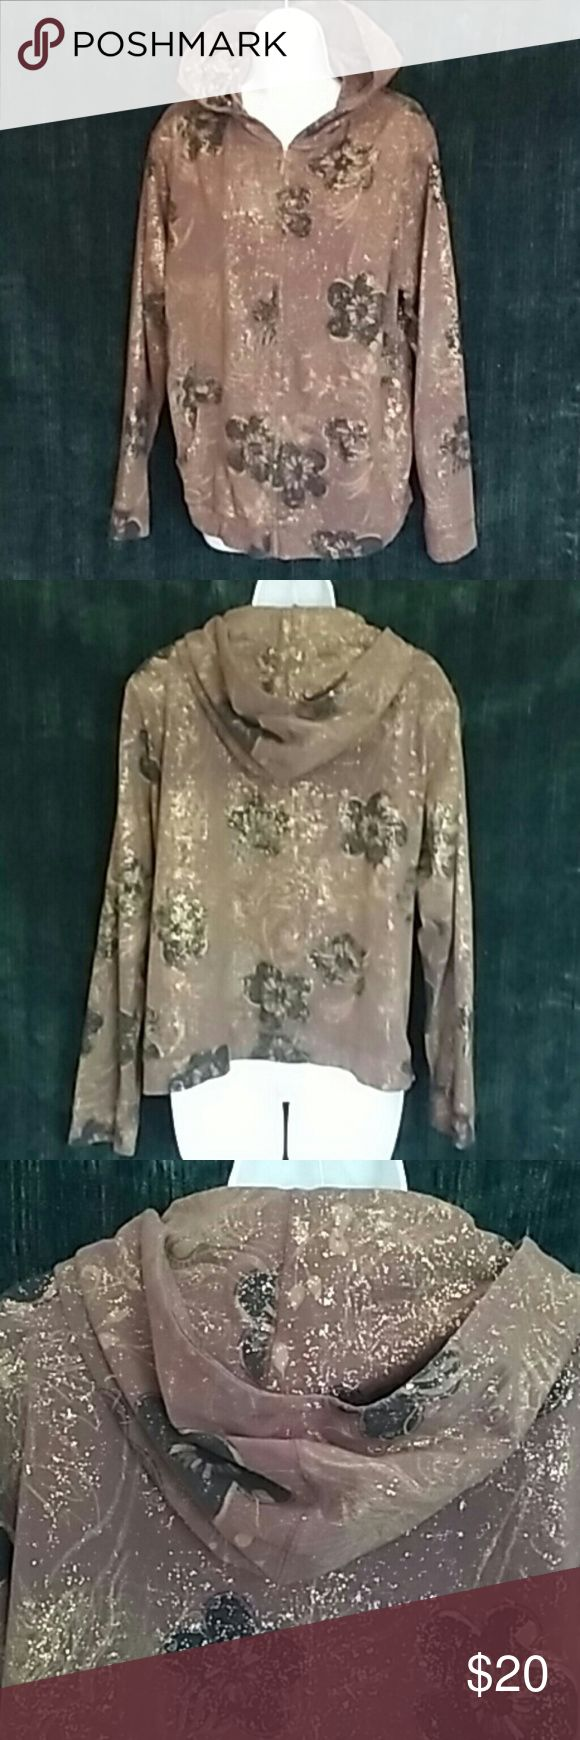 "Zenergy Chico's Brown Gold Metallic Hoodie Size XL 95% cotton 5% spandex. Machine wash. Zipper front. Two center front pockets. Armpit to armpit flat 25"". Length bottom hood 25"". Gold is a foil effect. Chico's size 3 = Xl/16 Chico's Tops Sweatshirts & Hoodies"